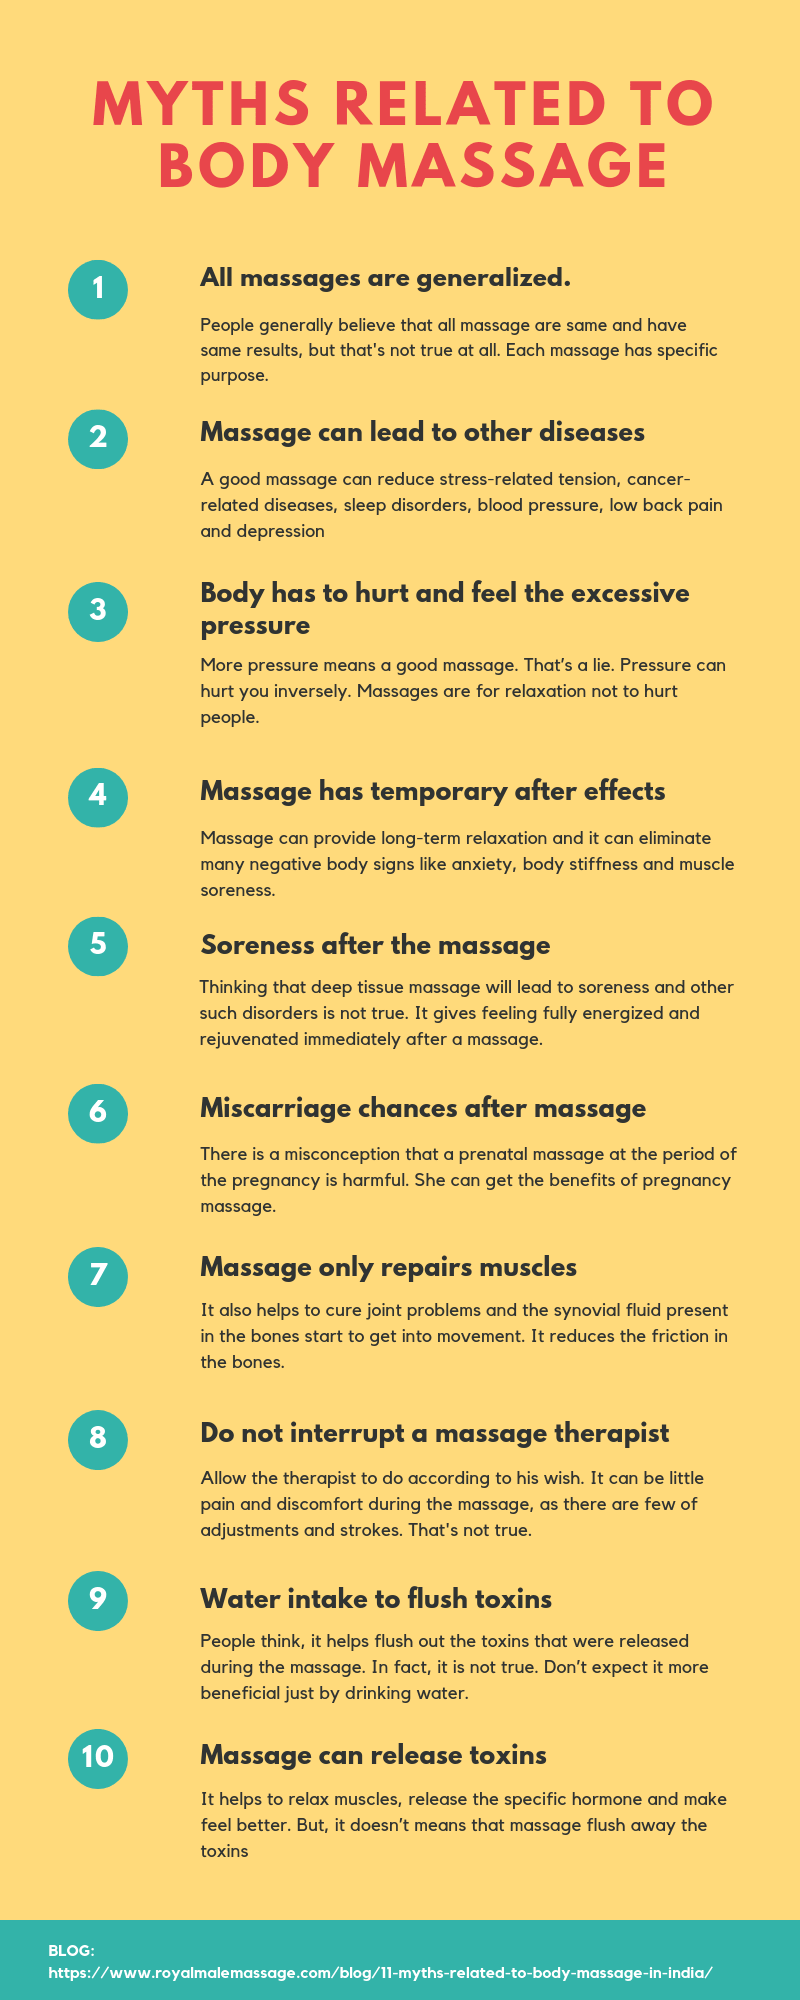 Myths Related To Body Massage